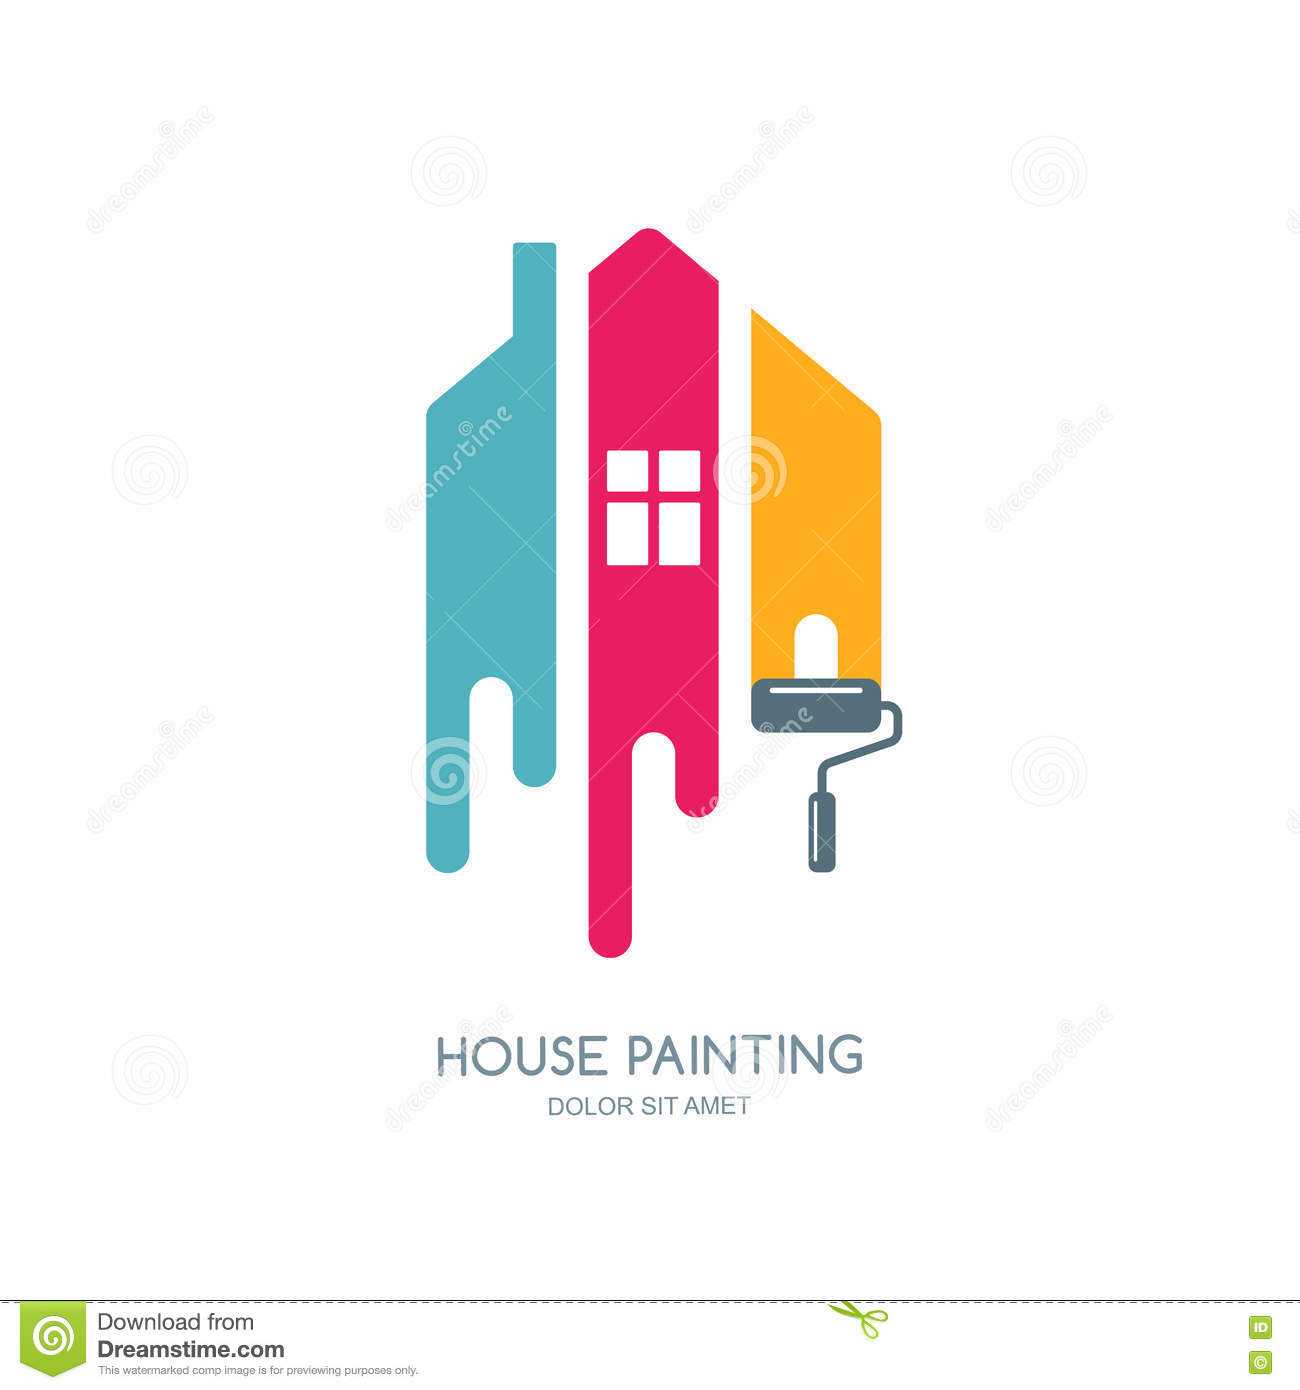 house painting service decor and repair multicolor icon vector logo label emblem - Home Decor Photos Free